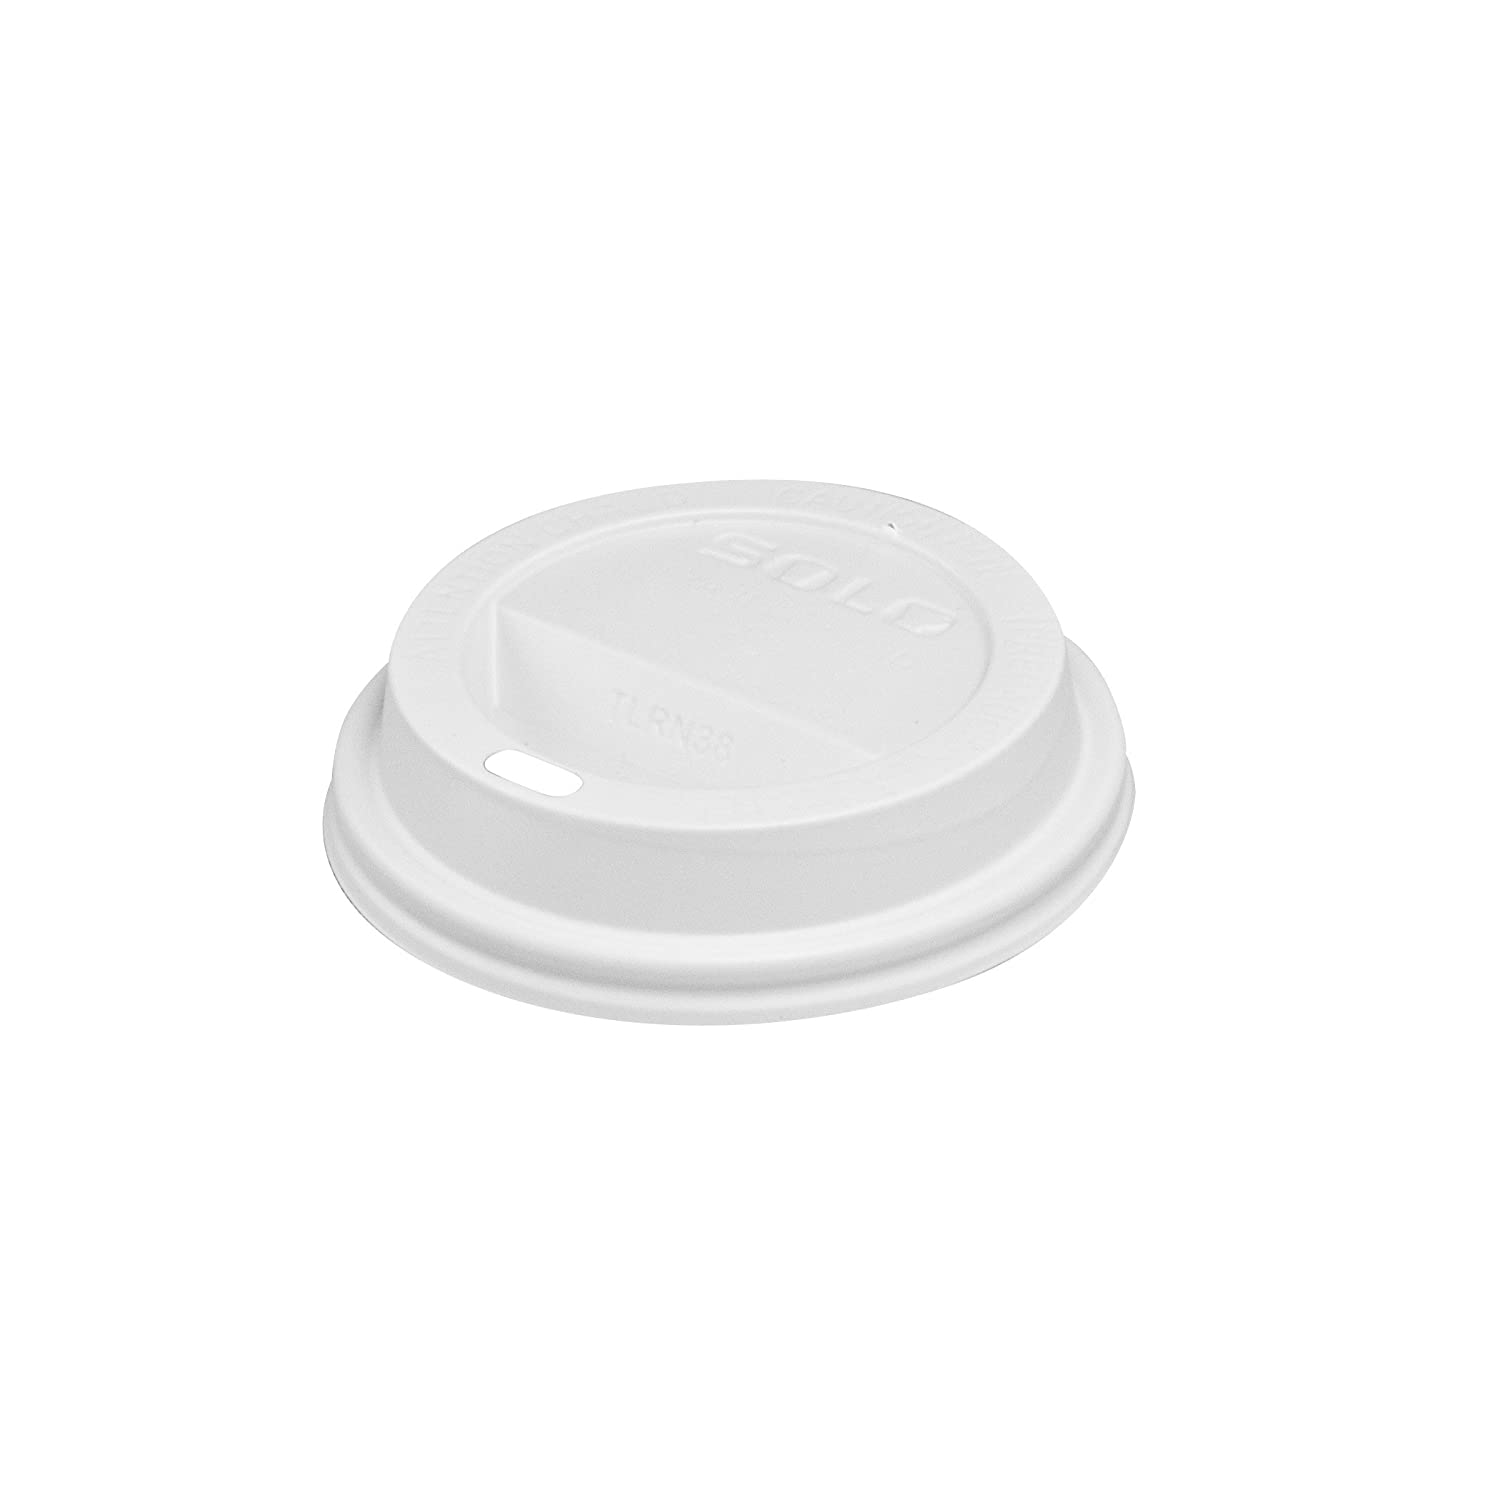 Solo TL38R2-0007 White Traveler Plastic Lid - For Solo Paper Hot Cups (Case of 1000)